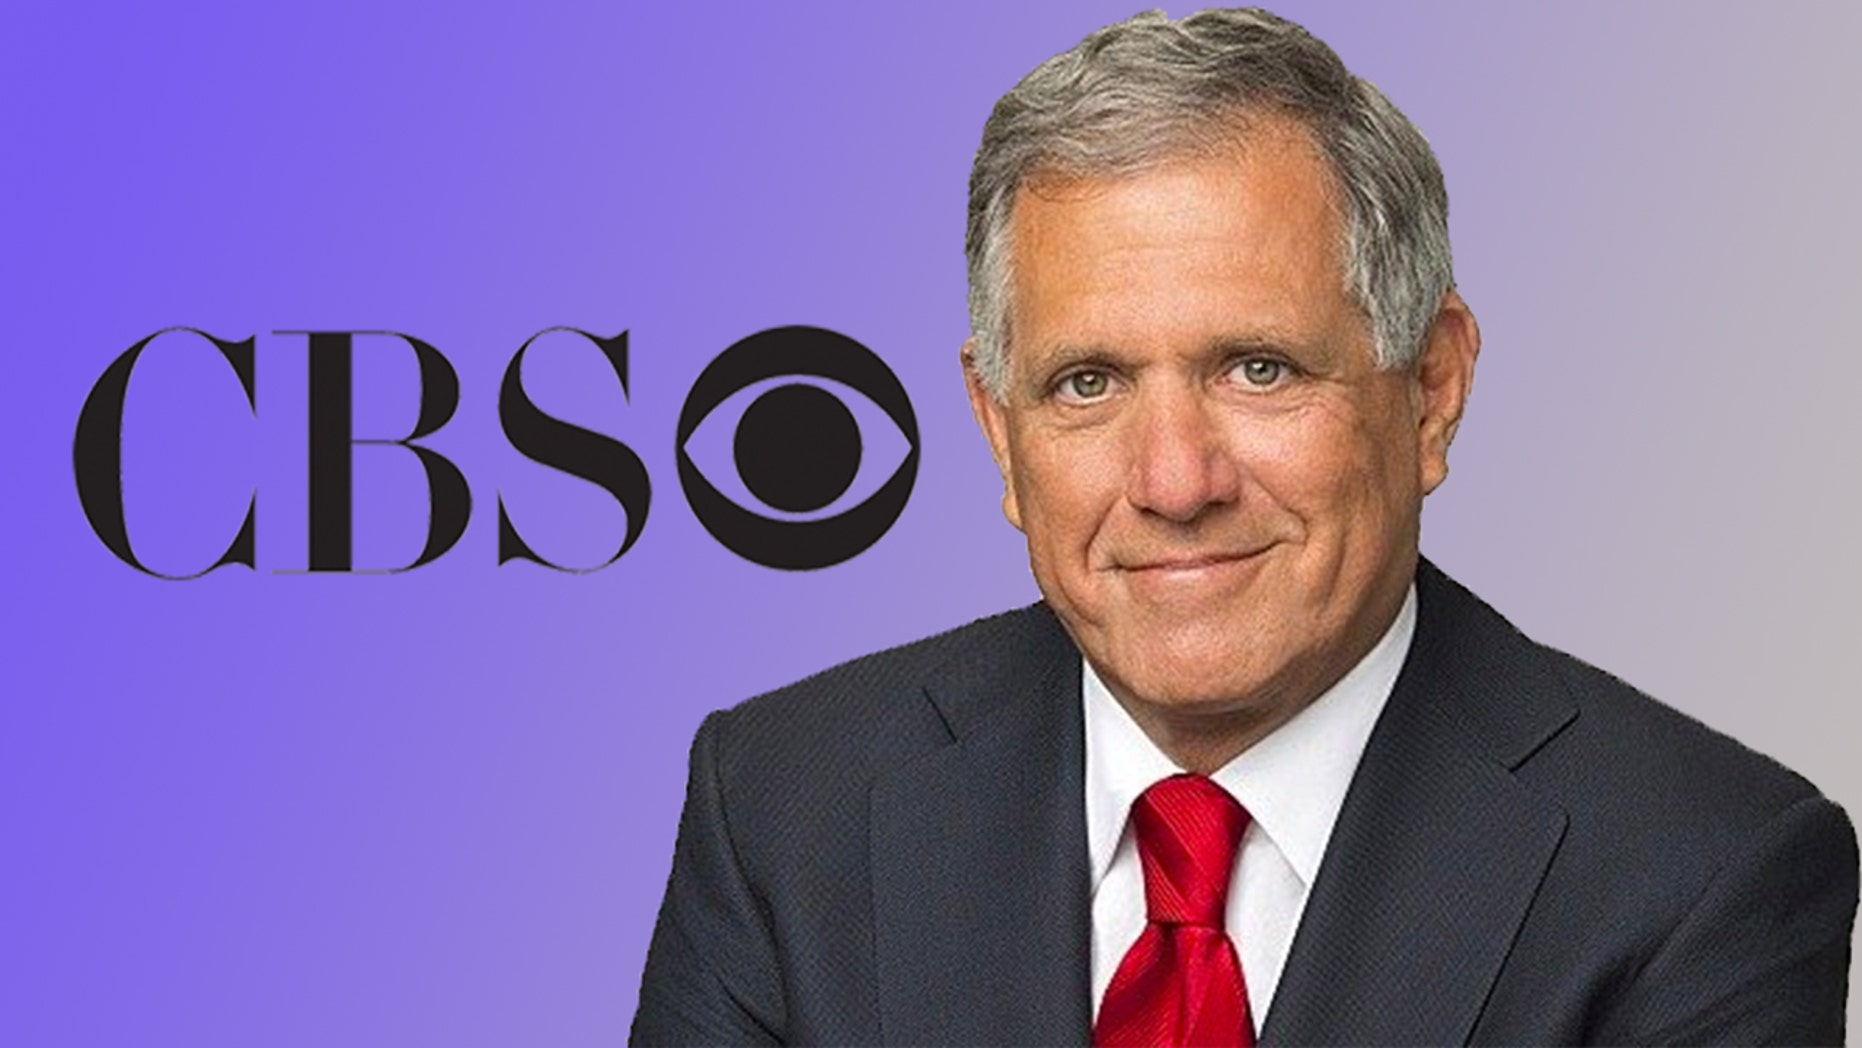 CBS CEO Les Moonves is the subject of Ronan Farrow's latest #MeToo movement bombshell.